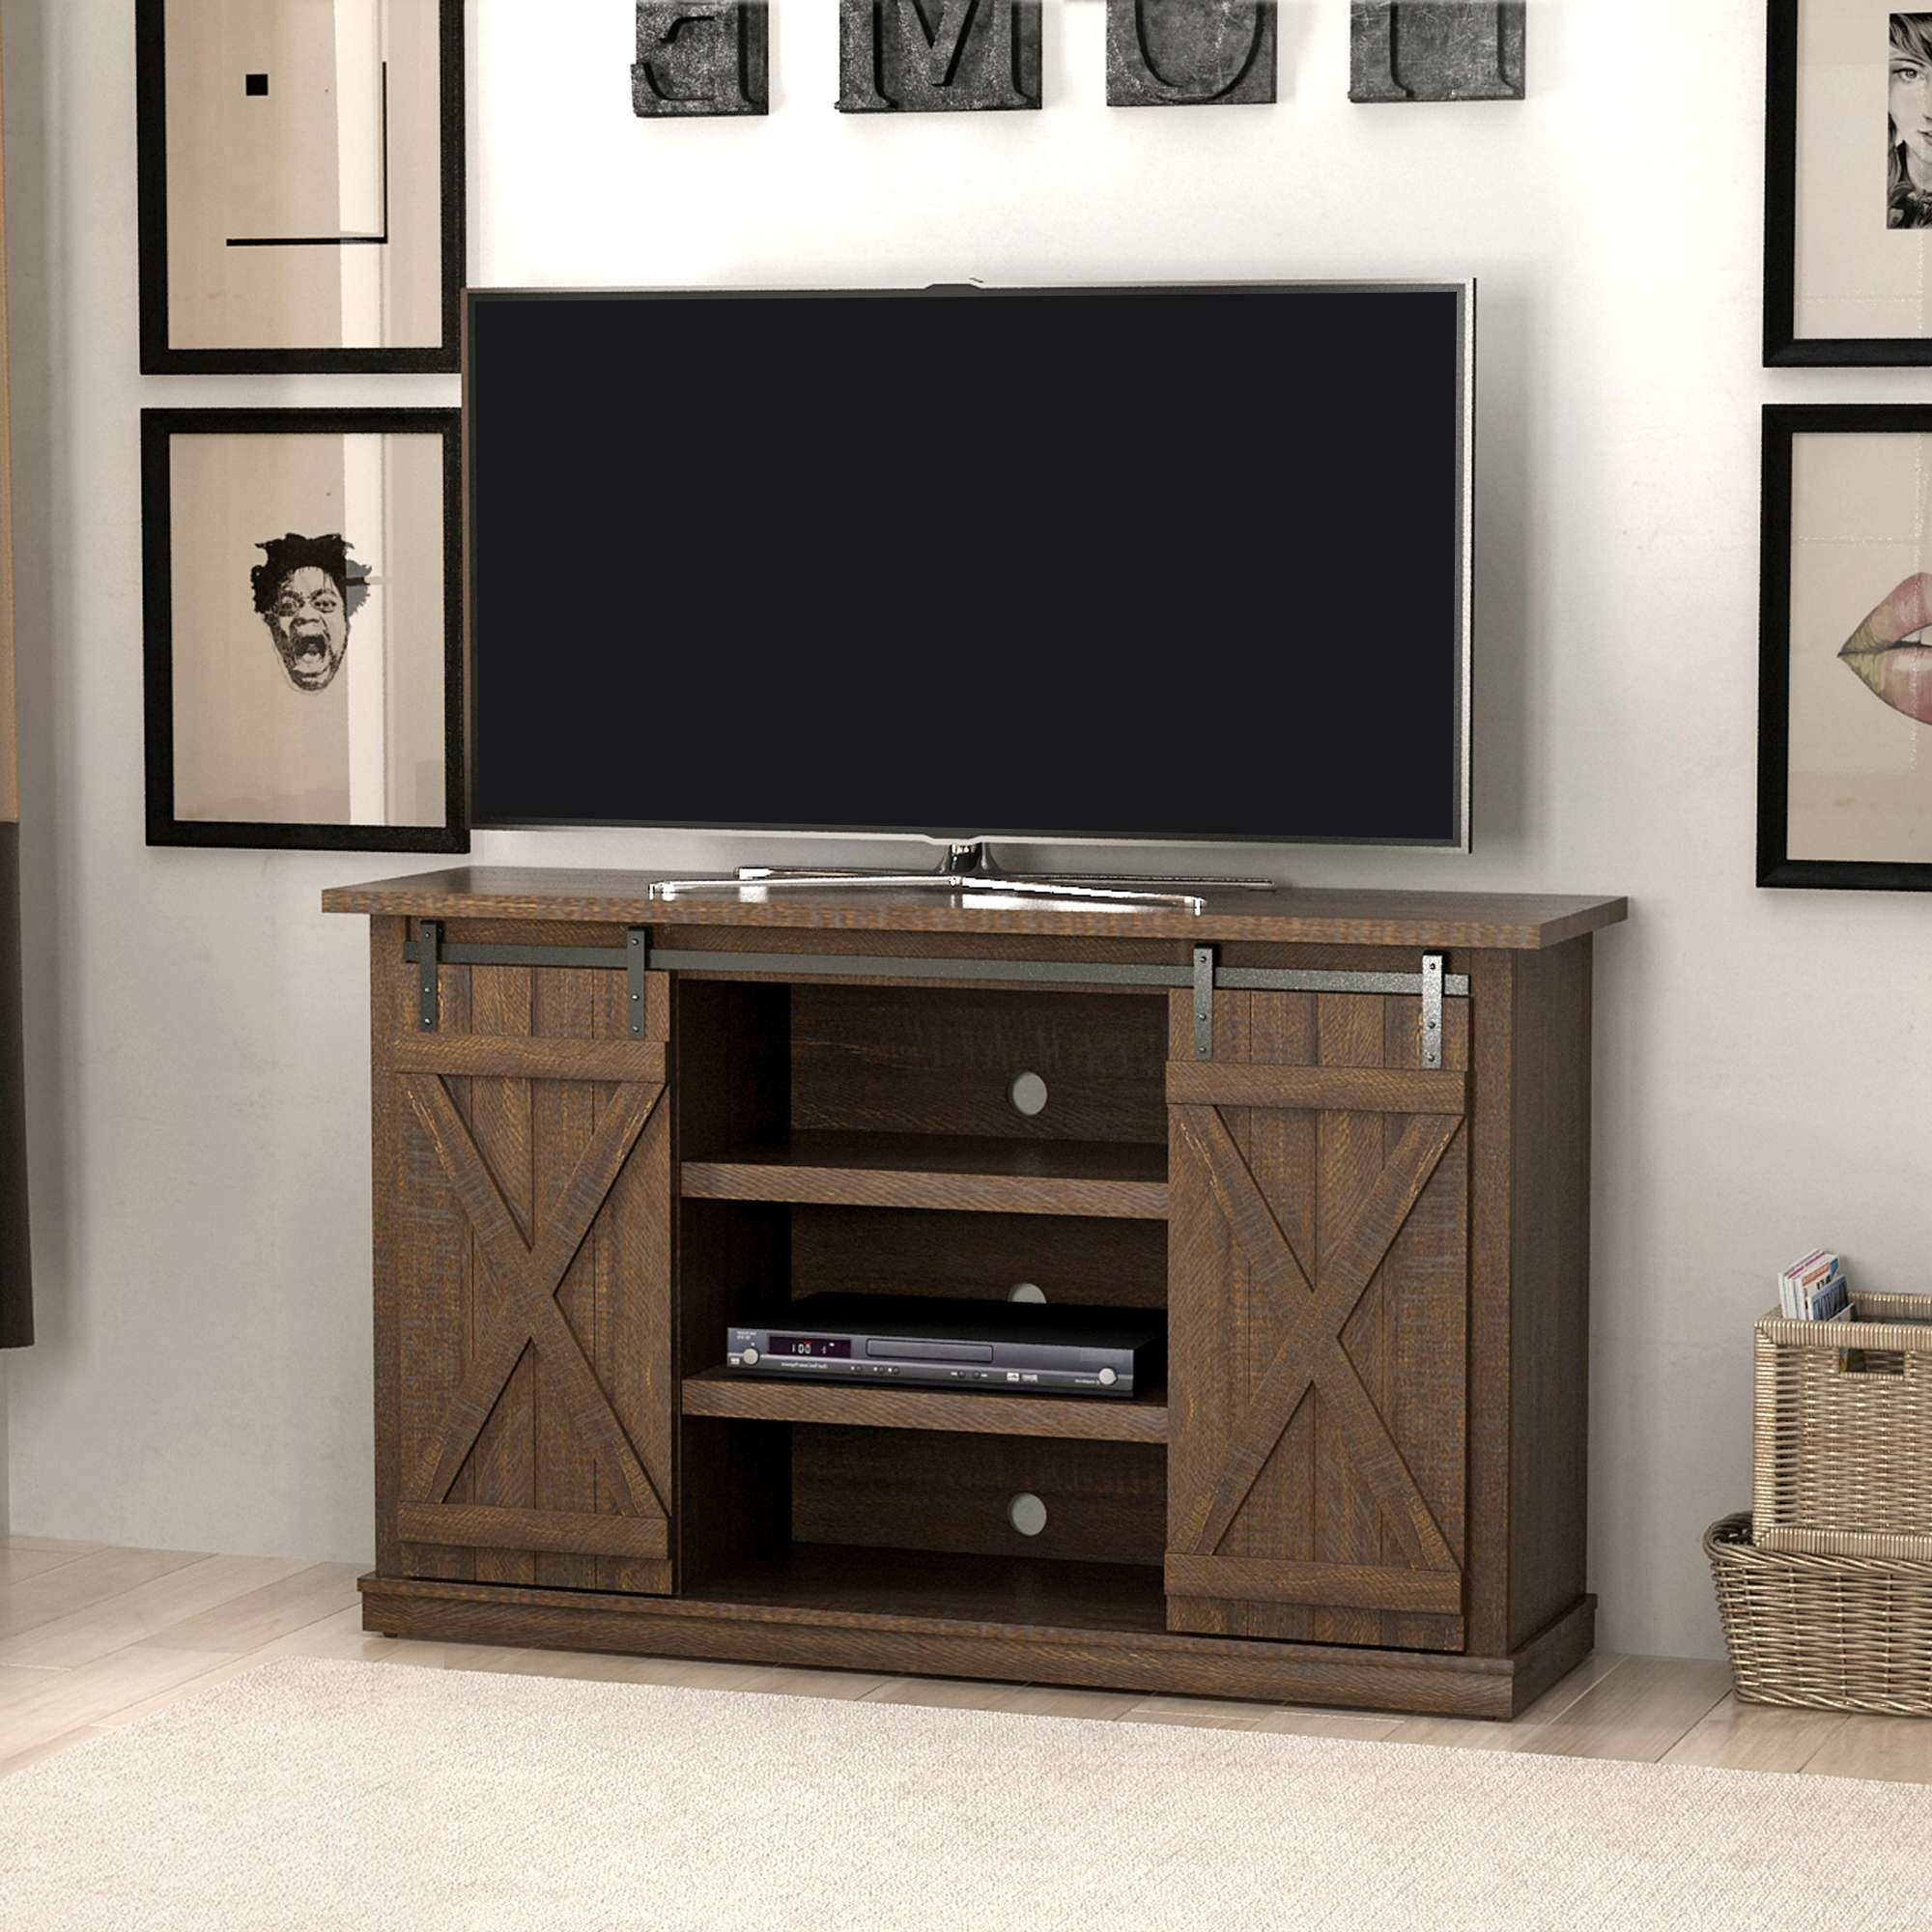 Tv Stands – Walmart With Modern Tv Stands For 60 Inch Tvs (View 15 of 15)